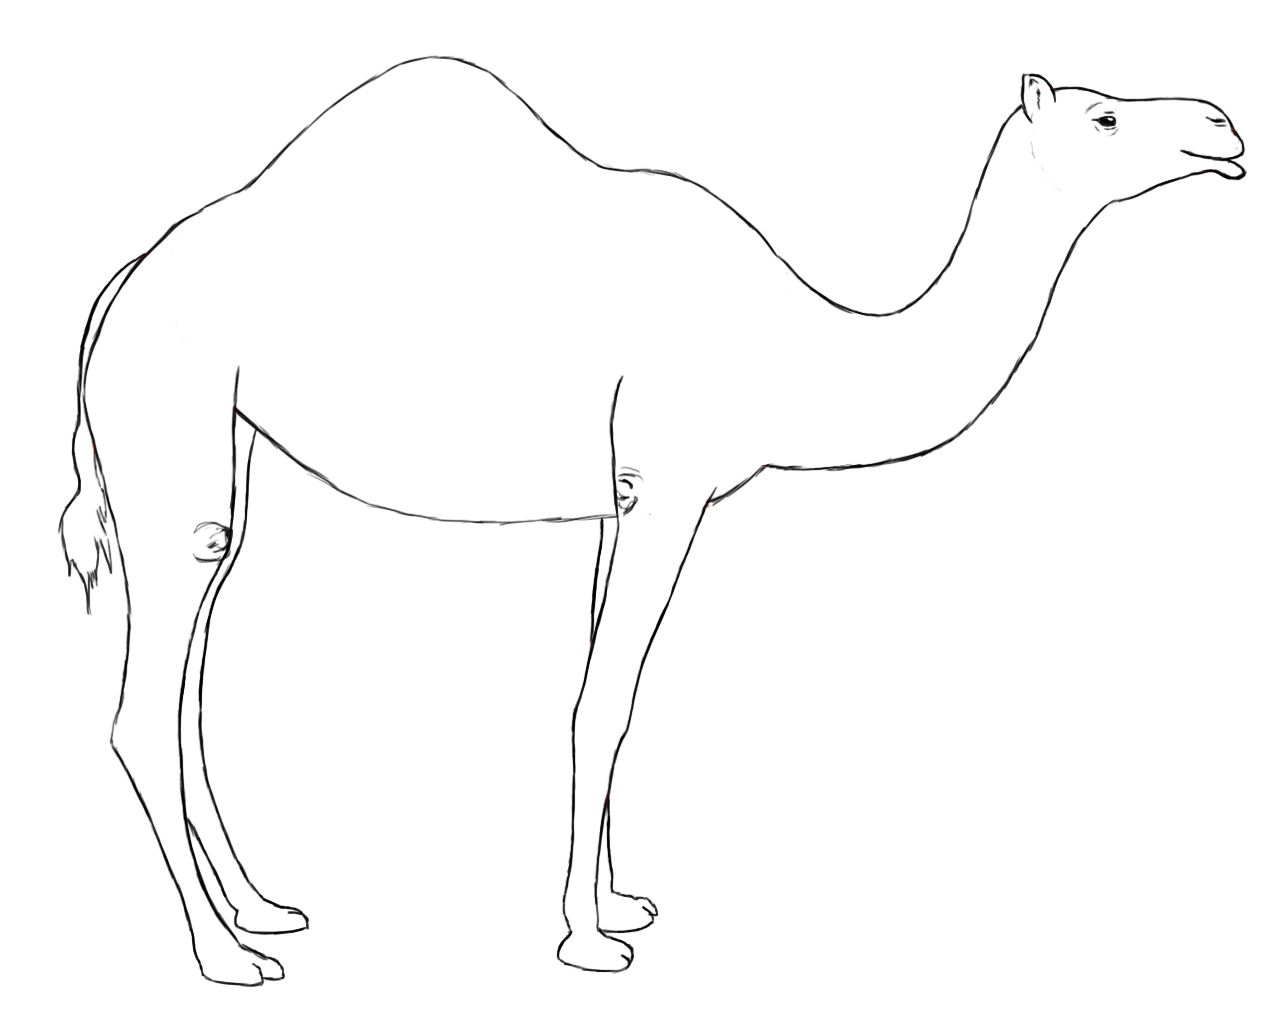 How To Draw A Camel | Pinterest | Zeichnen und Tier